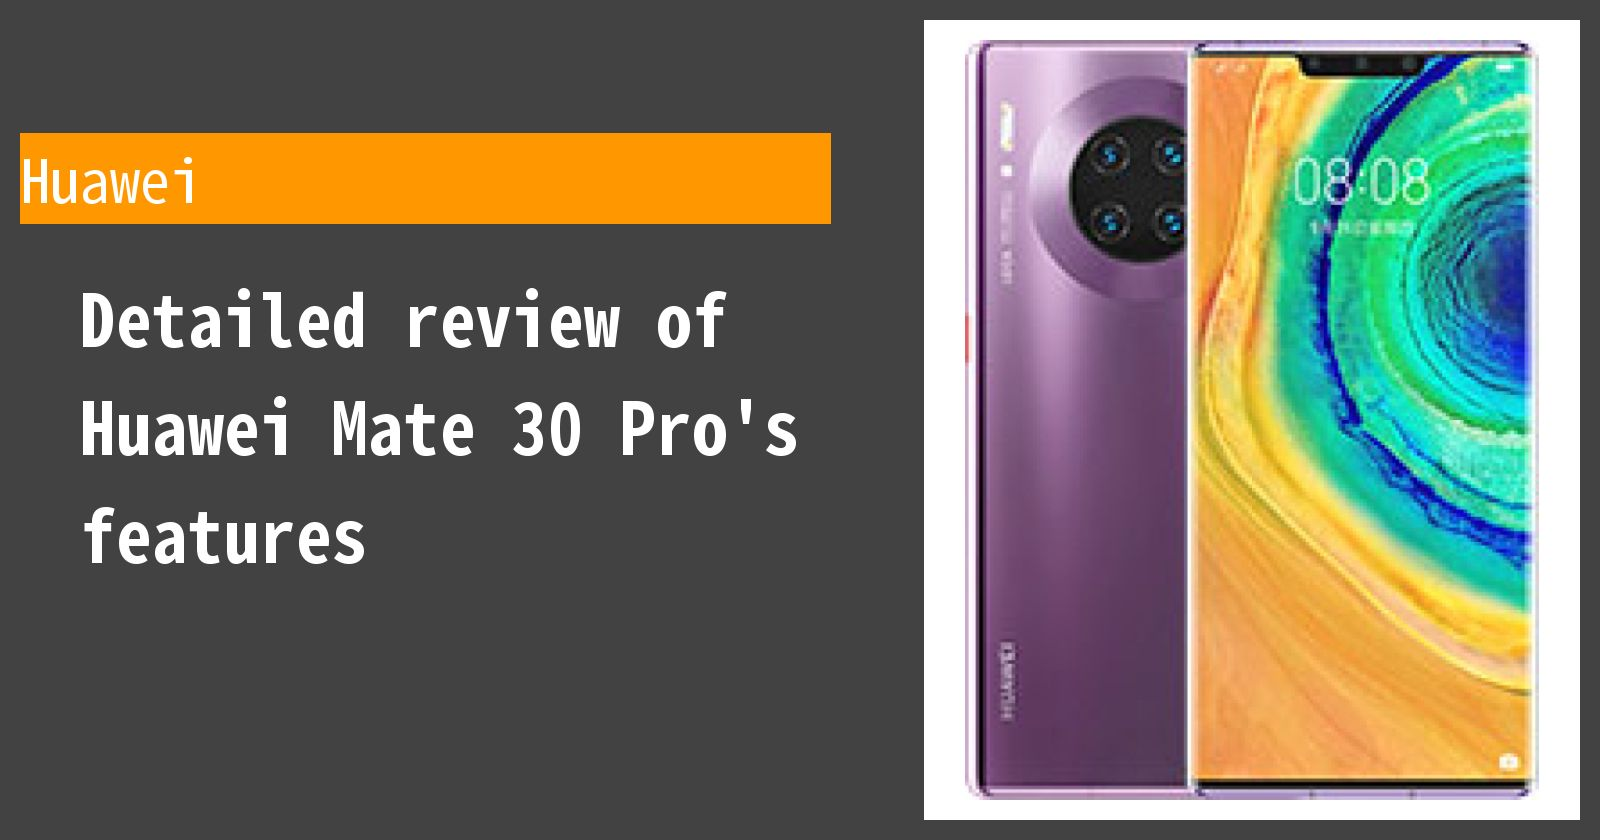 Detailed review of Huawei Mate 30 Pro's features